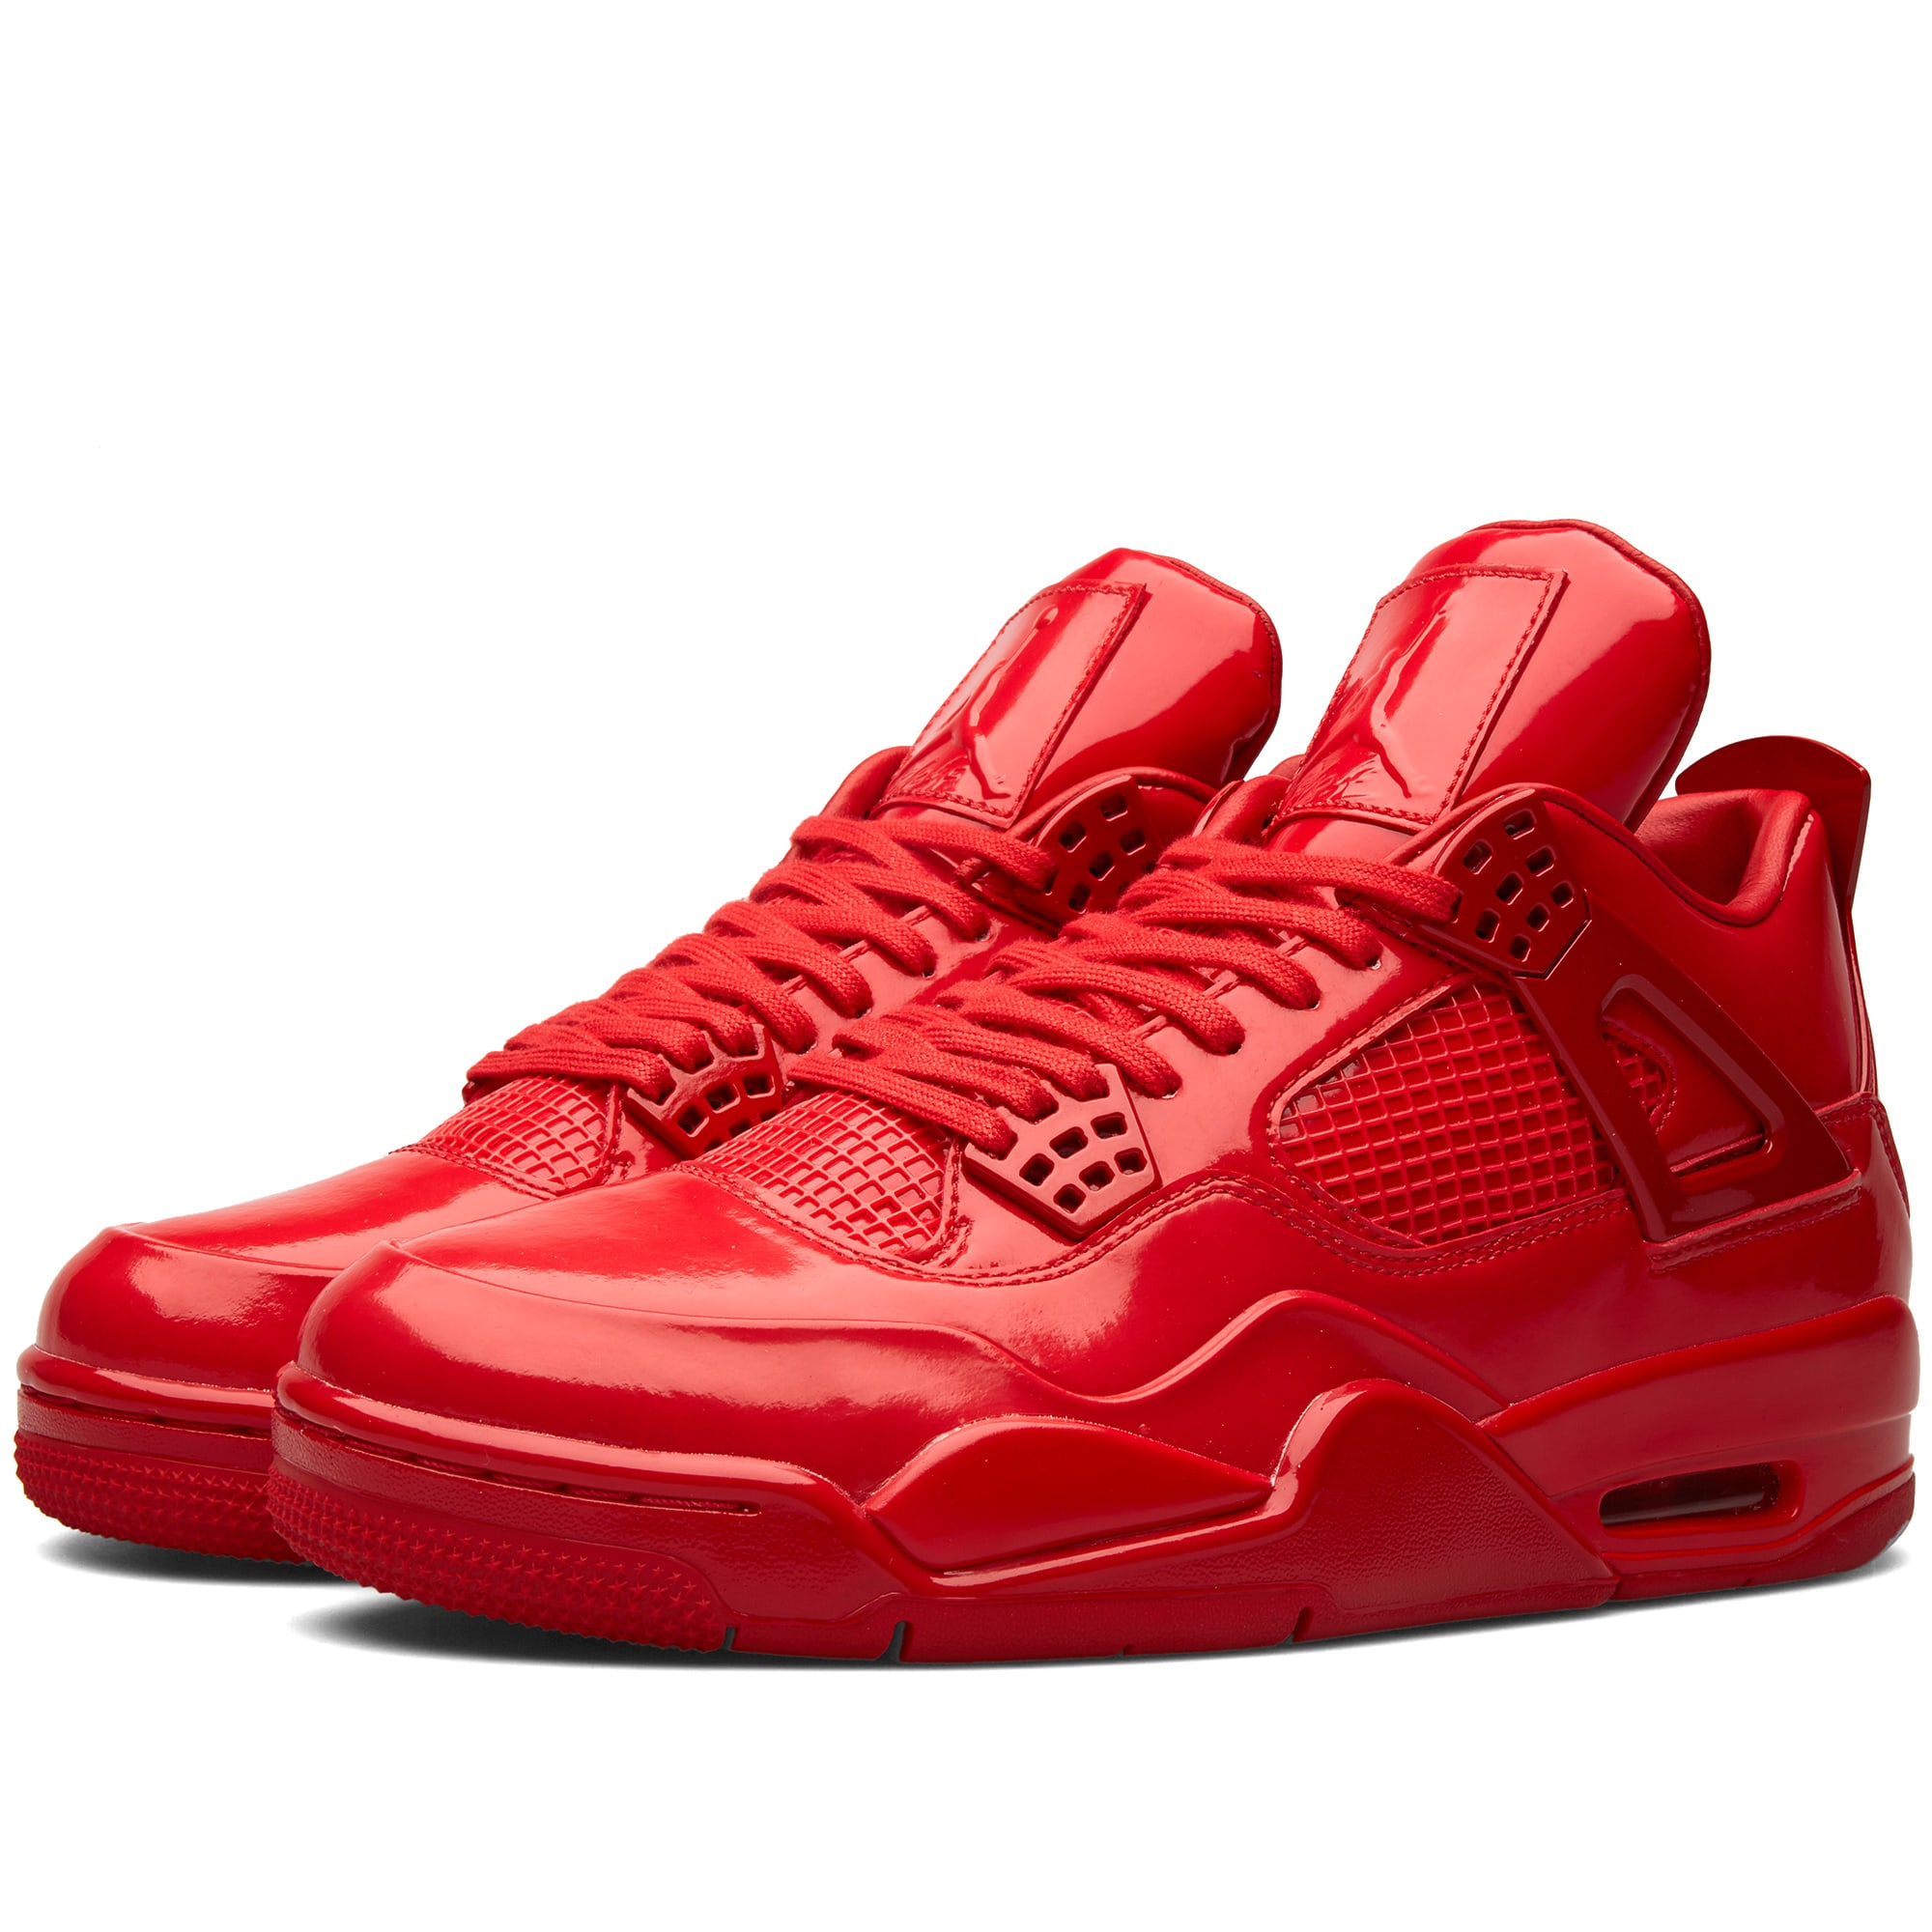 low priced 7d44d b414a Nike Air Jordan XI Lab4 University Red   END.